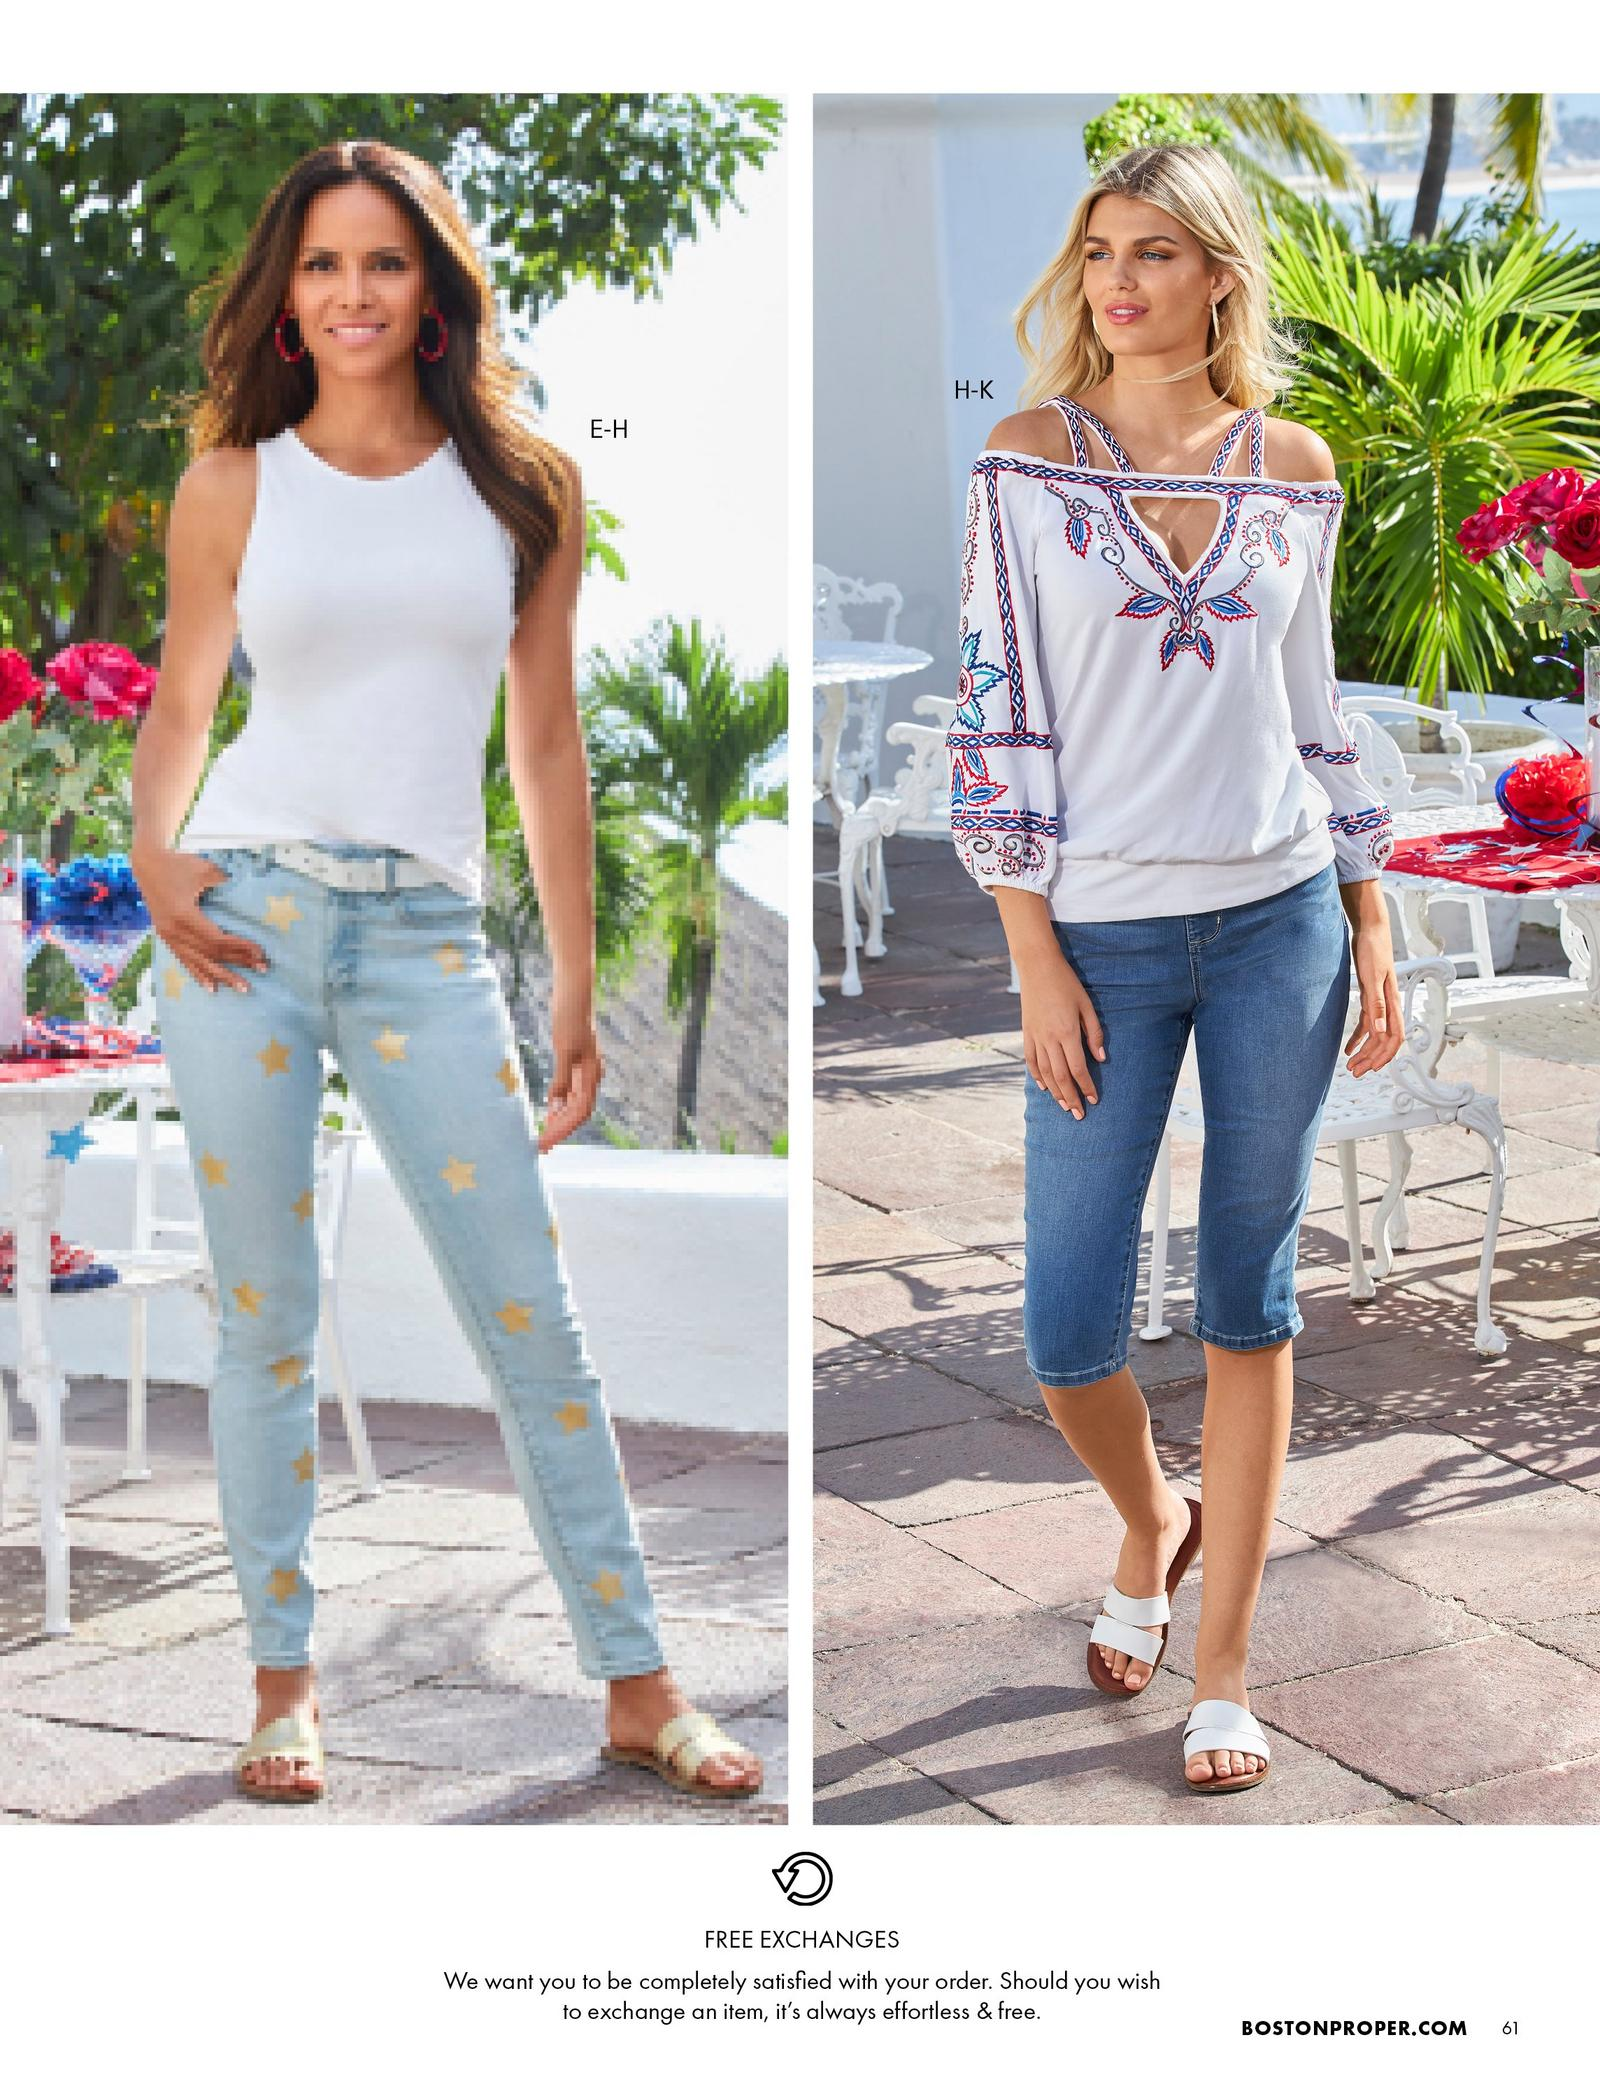 left model wearing light wash gold star printed jeans, white tank top, red hoop earrings, and gold strappy sandals. right model wearing a white long-sleeve cold-shoulder top with floral embroidery, capri jeans, gold hoop earrings, and white strappy sandals.